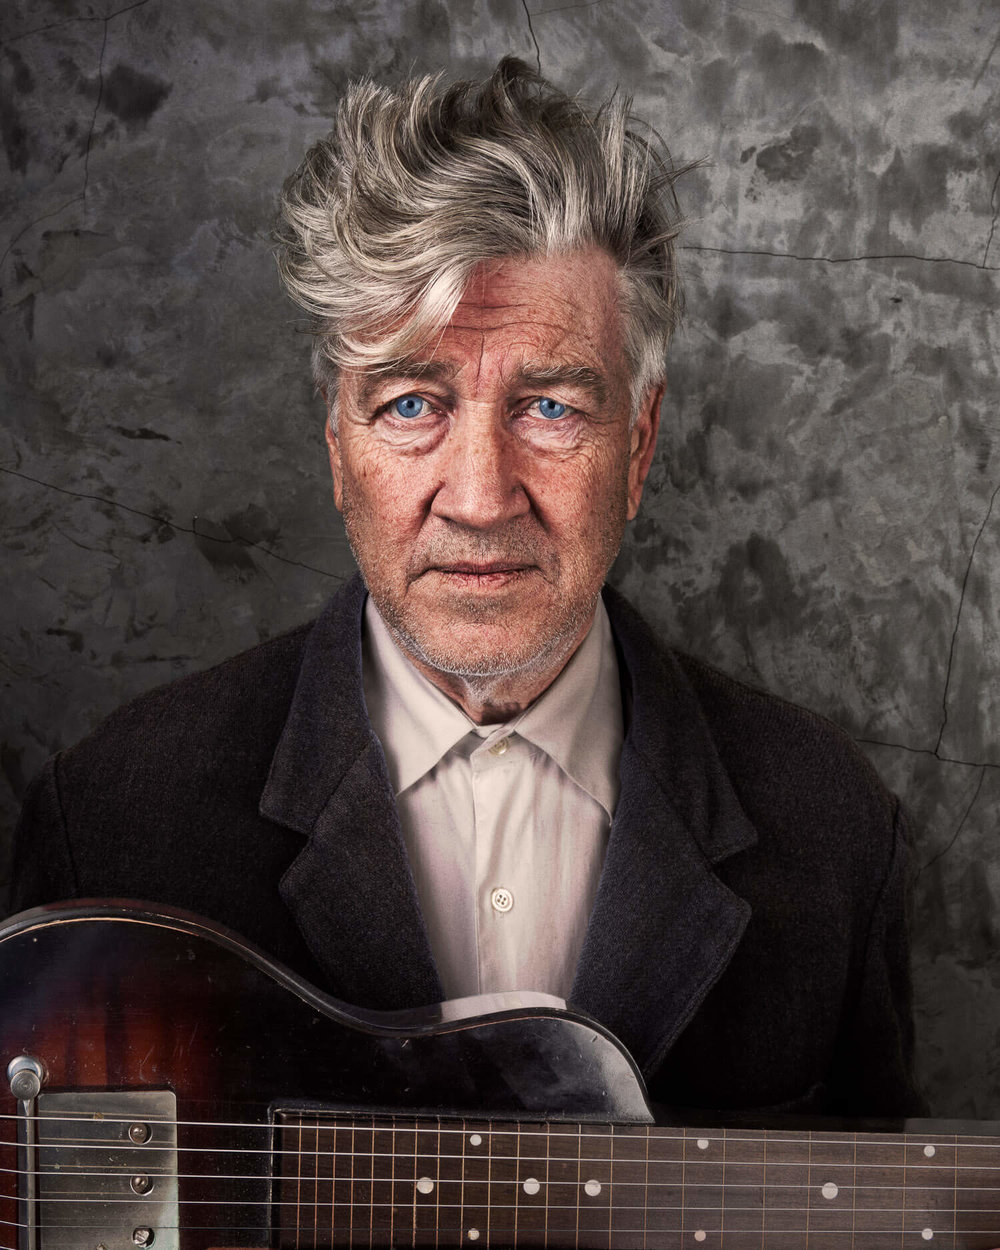 stp_david_lynch_027.jpg